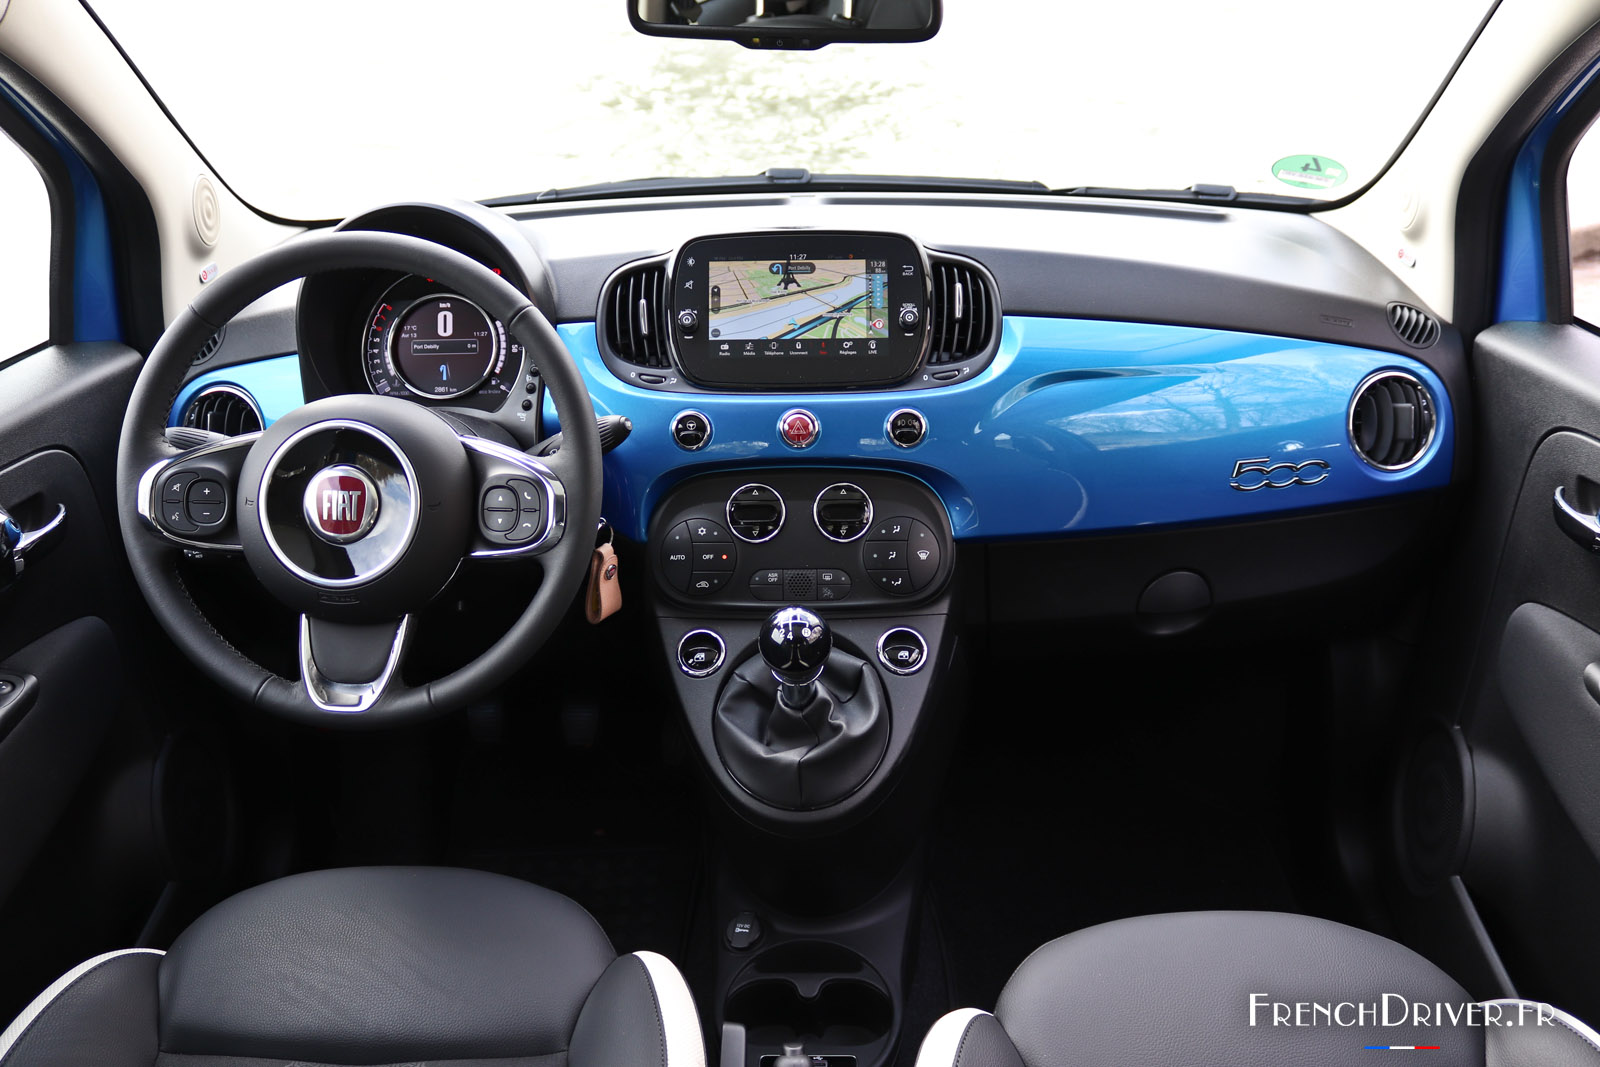 essai nouvelle fiat 500 mirror dans l 39 air du temps french driver. Black Bedroom Furniture Sets. Home Design Ideas